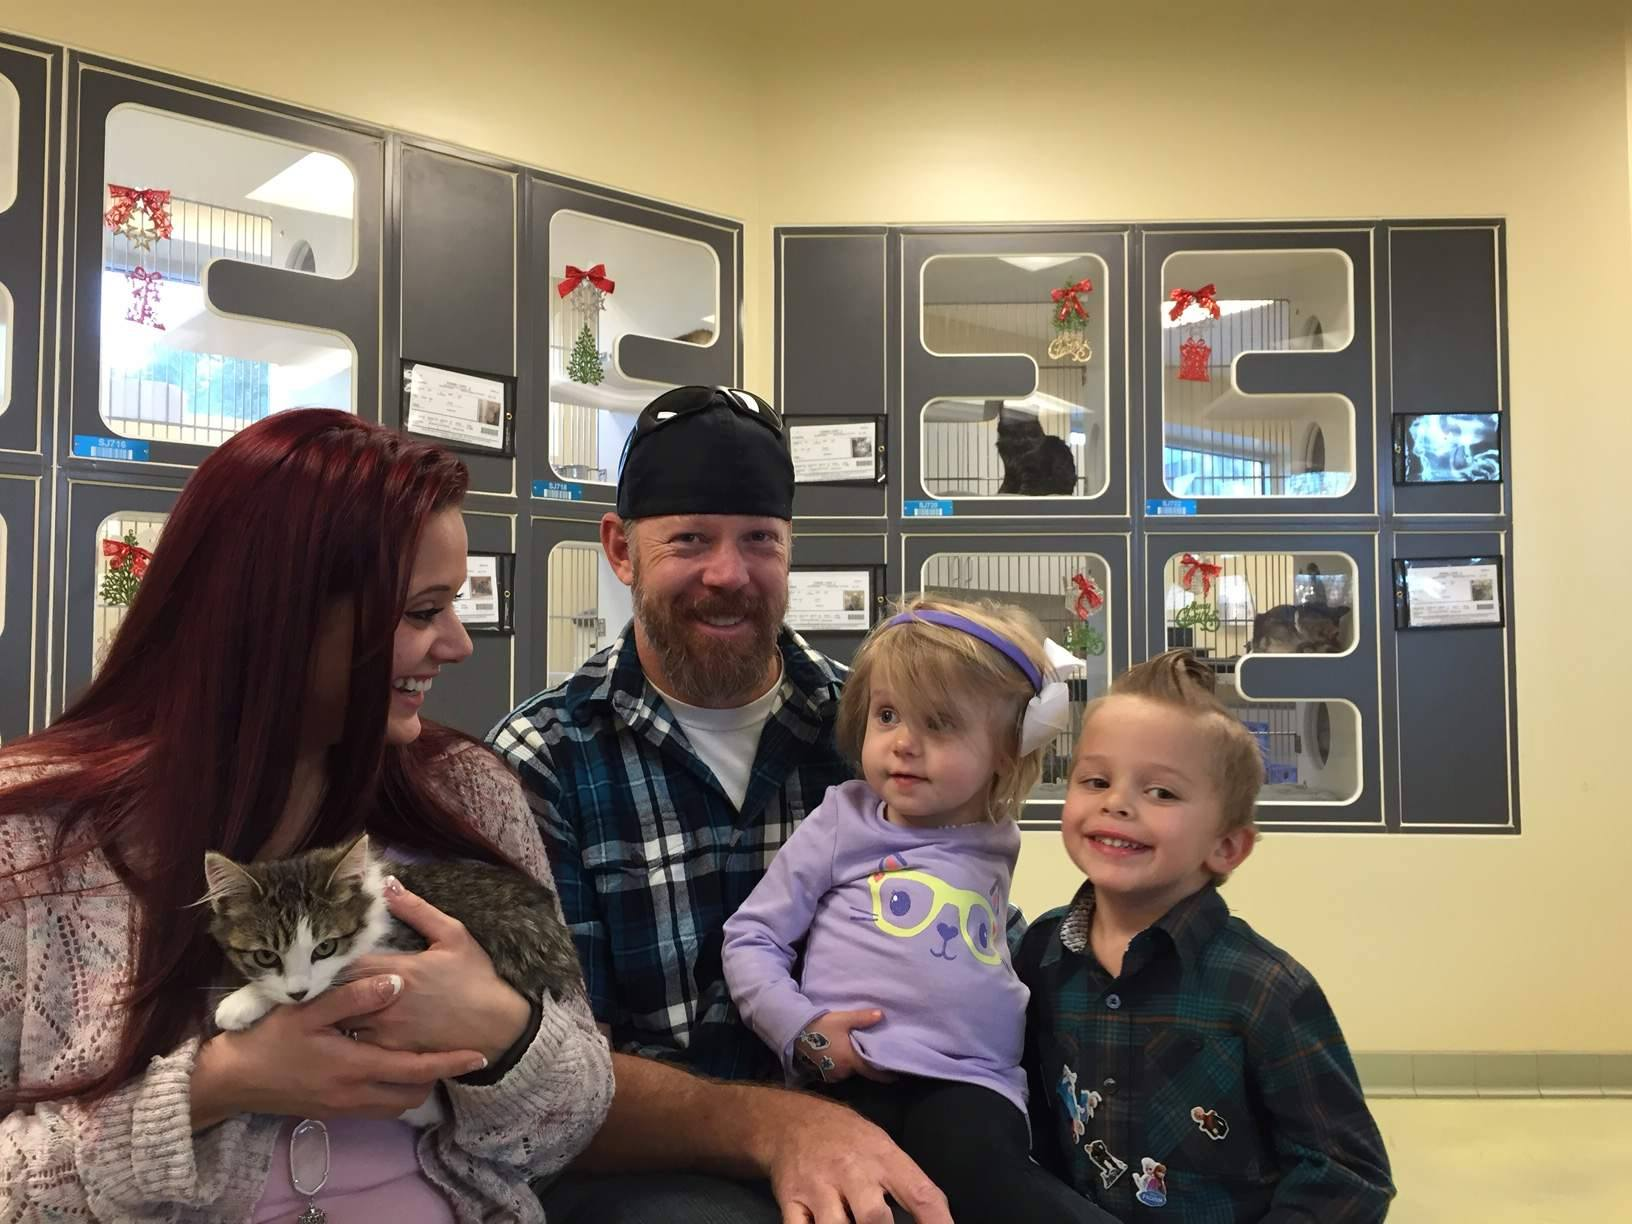 This family adopted a kitten with a missing leg for their amputee daughter